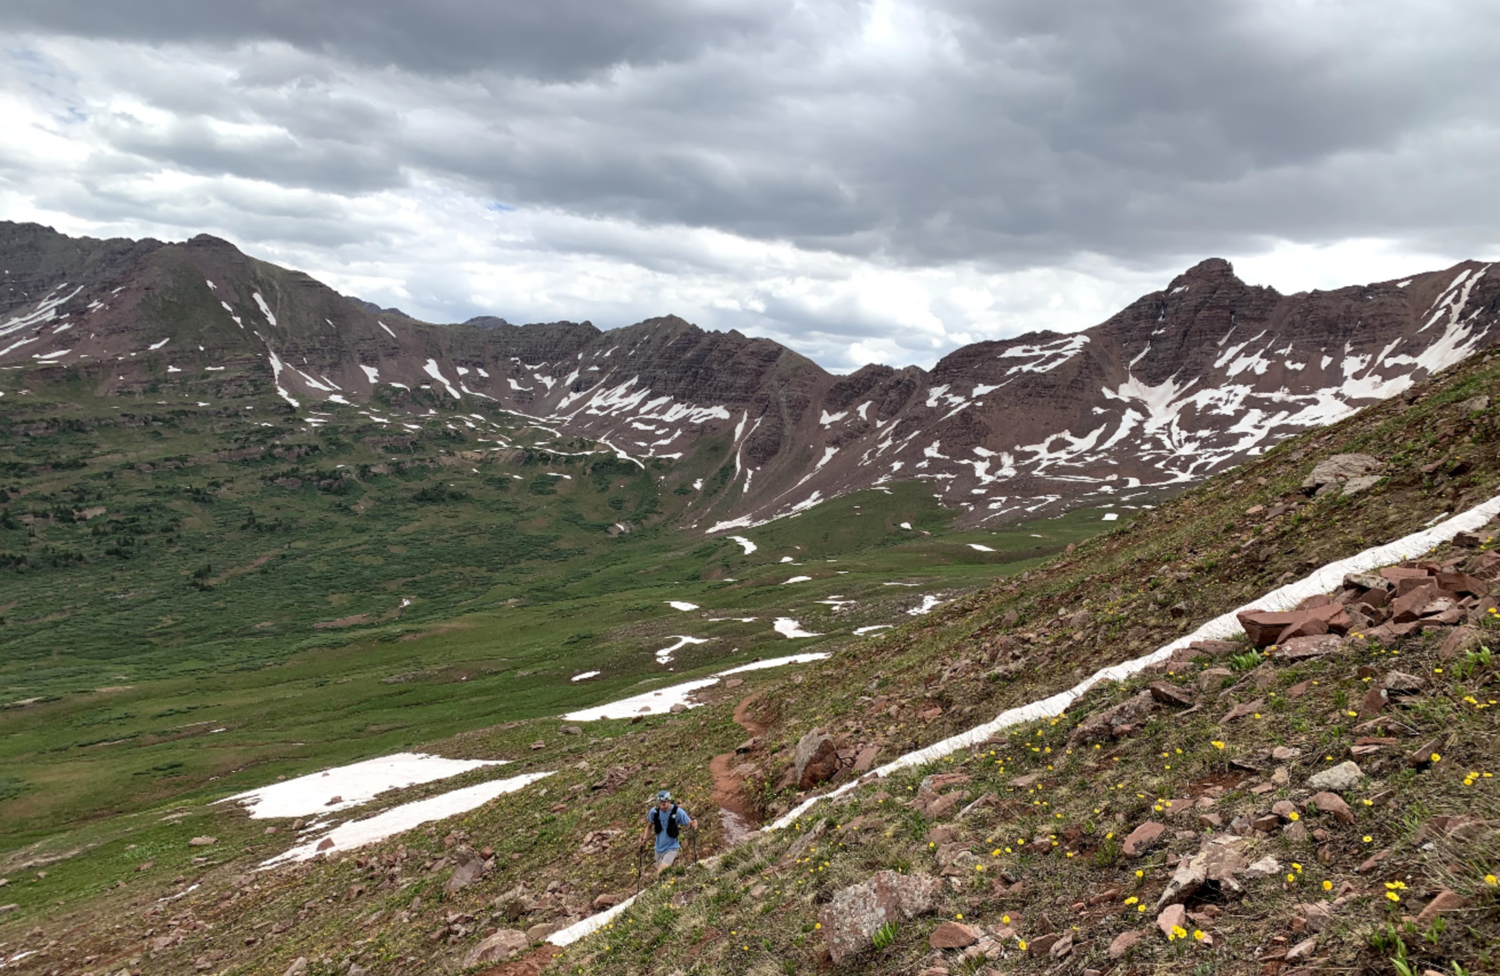 The ascent to Frigid Air Pass. The clouds were concerning, but the rain ultimately held off.